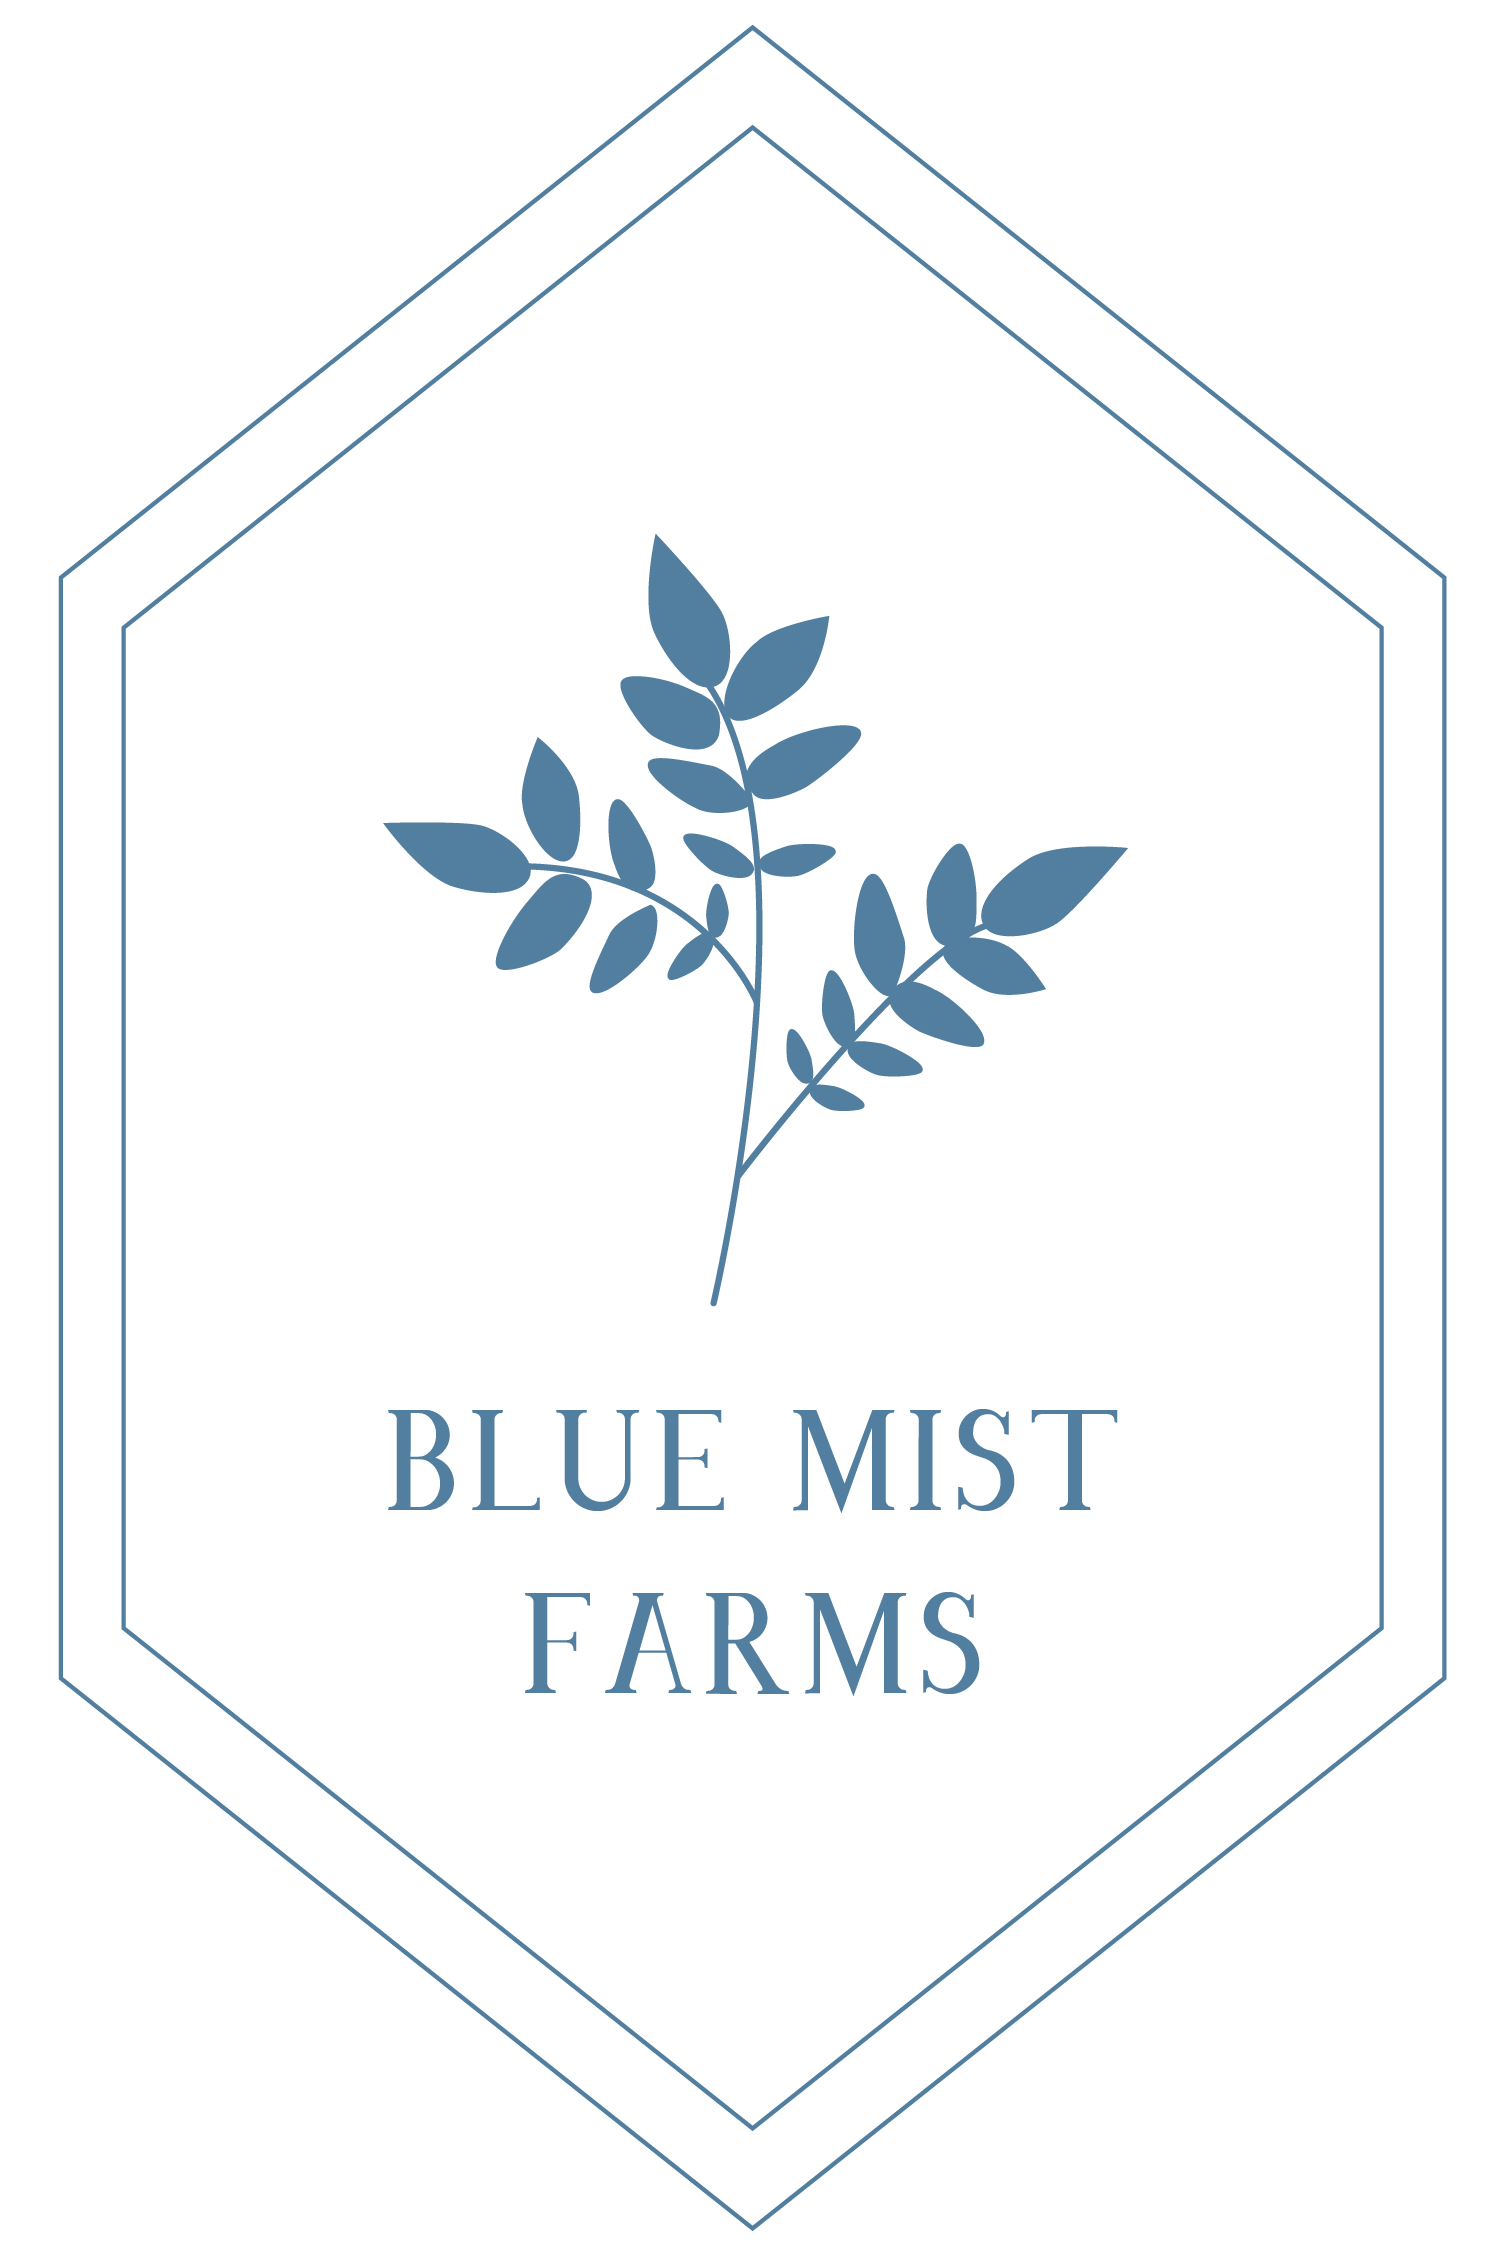 bluemistfarms logo.png